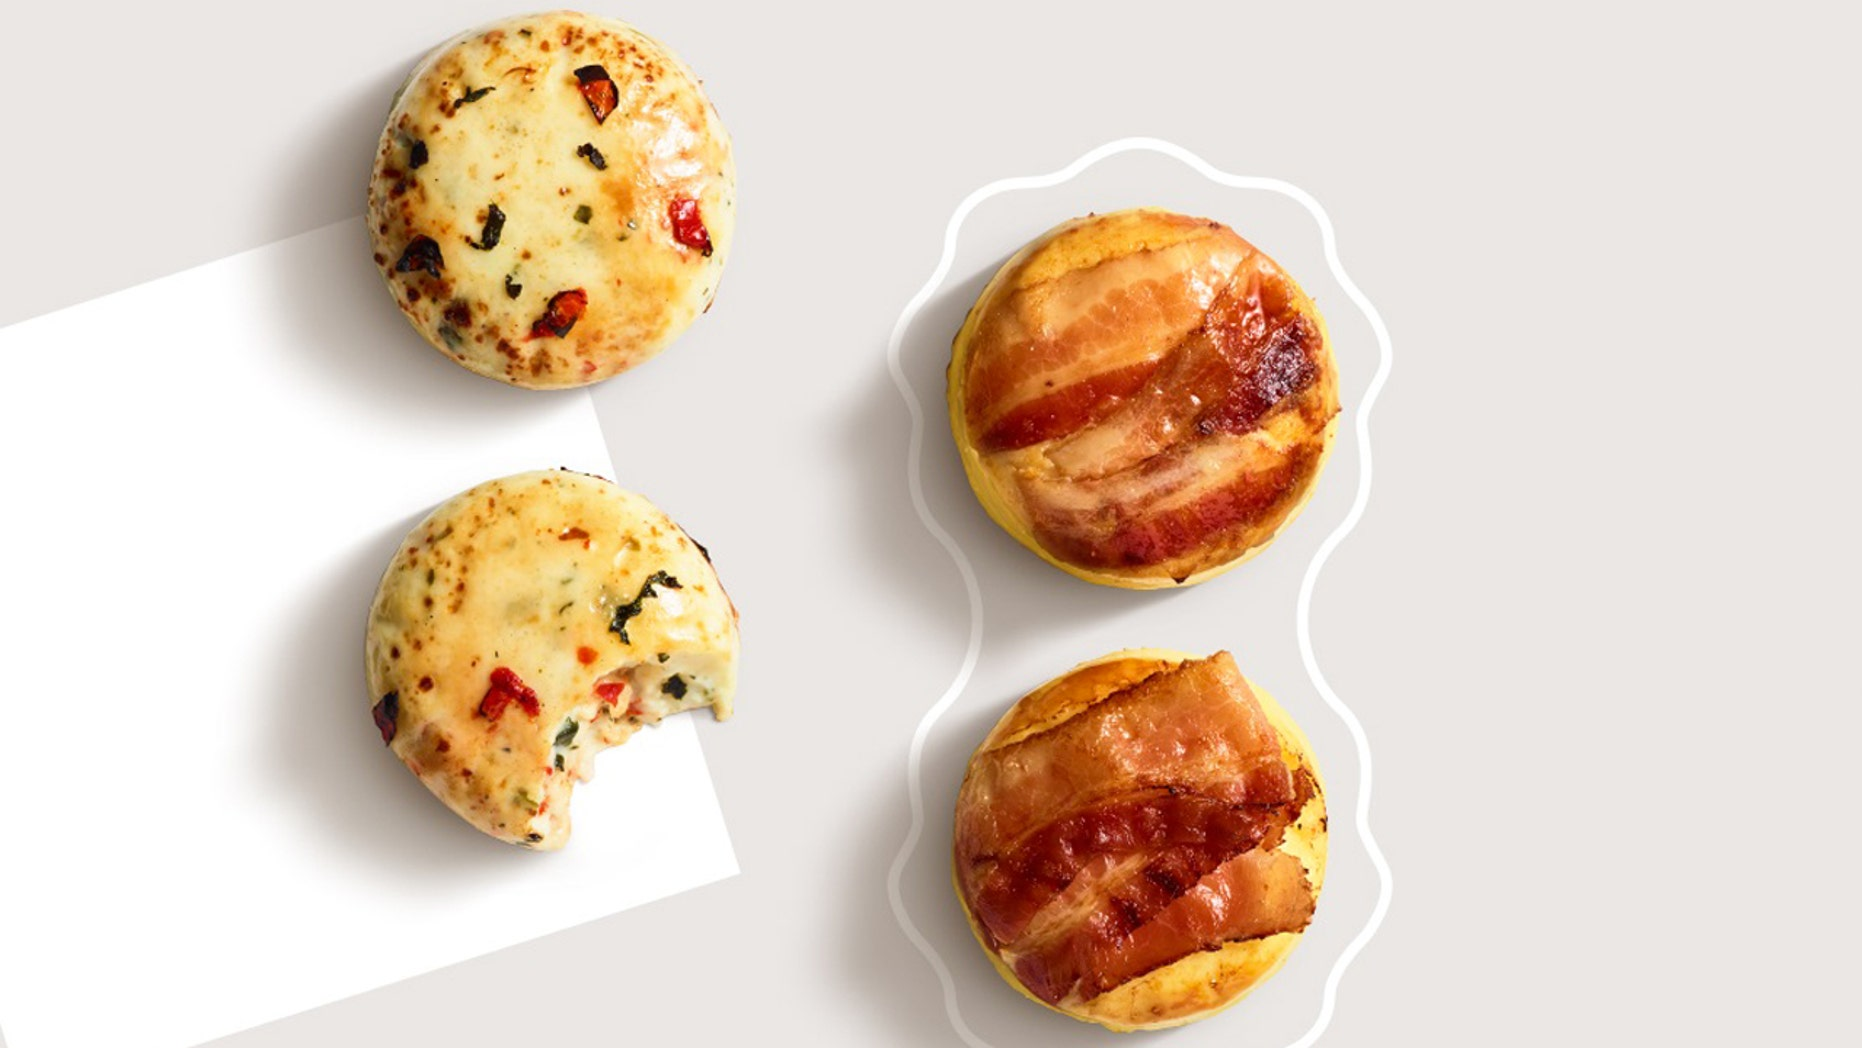 The coffee chain is now serving two high-protein egg bites.